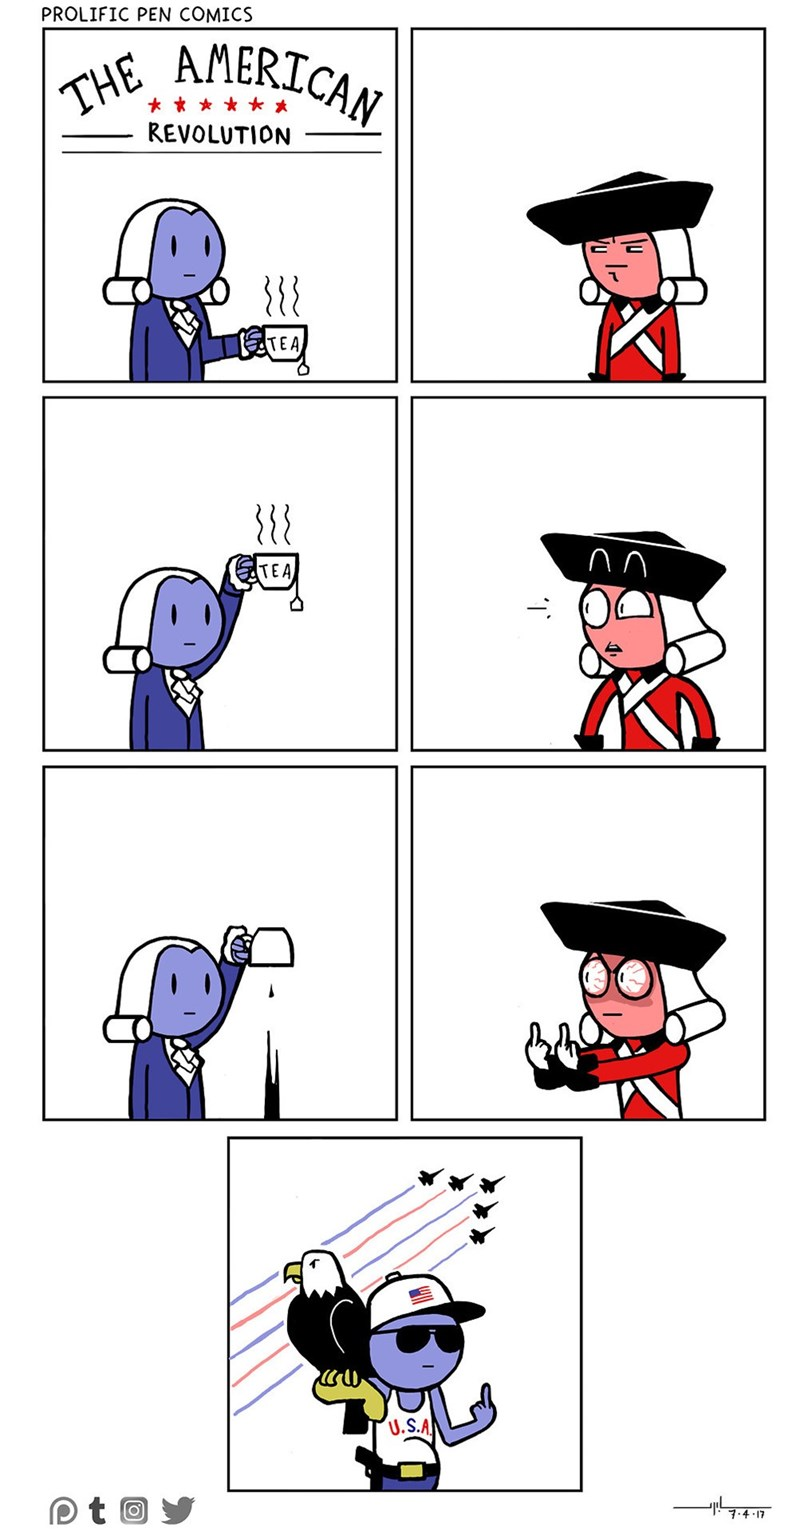 Funny web comic about the american revolution.